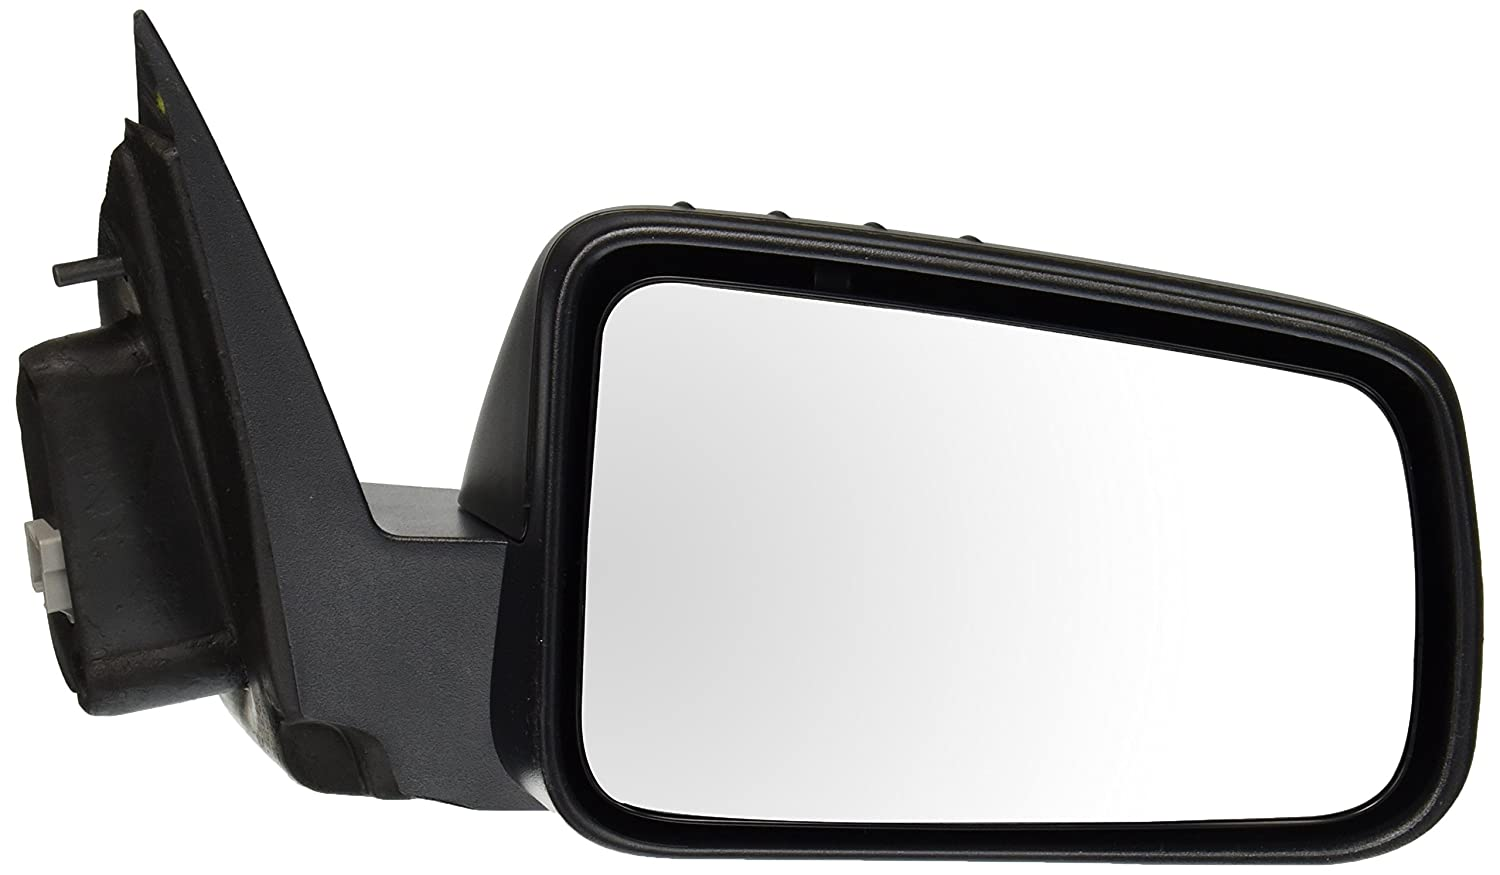 OE Replacement Ford Focus Passenger Side Mirror Outside Rear View (Partslink Number FO1321318) Unknown